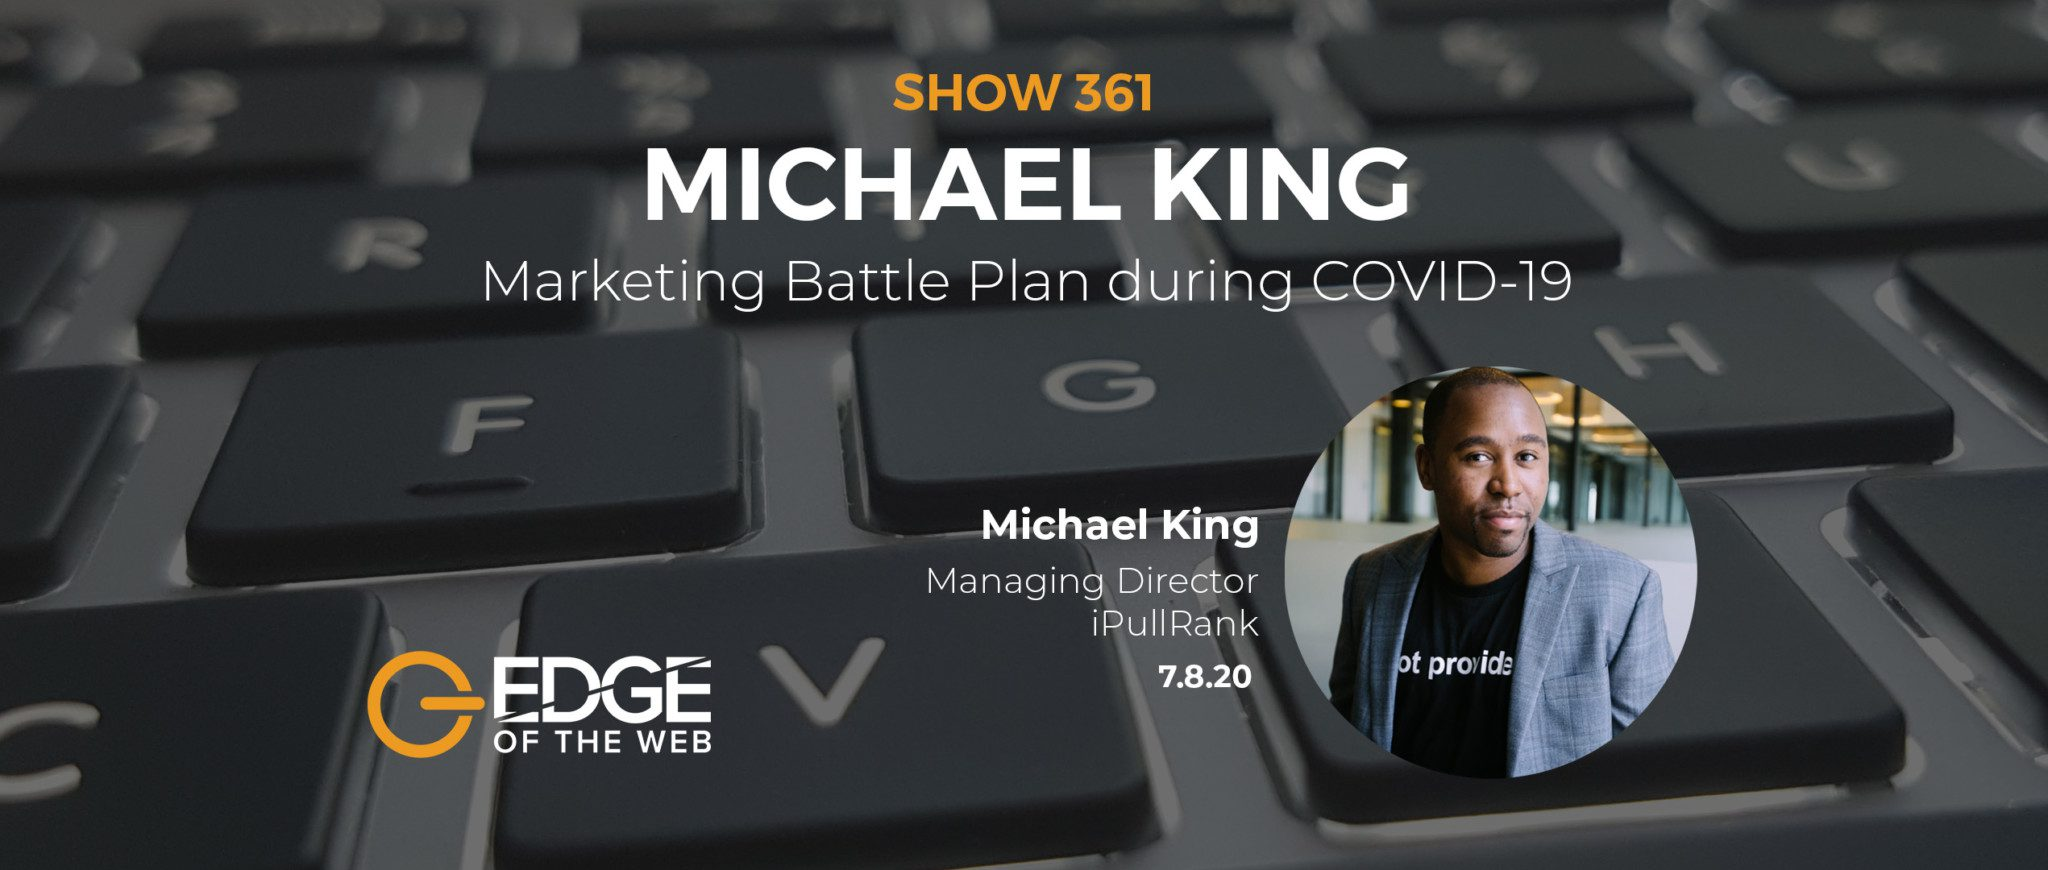 Michael King Featured Image for EDGE of the Web EP361